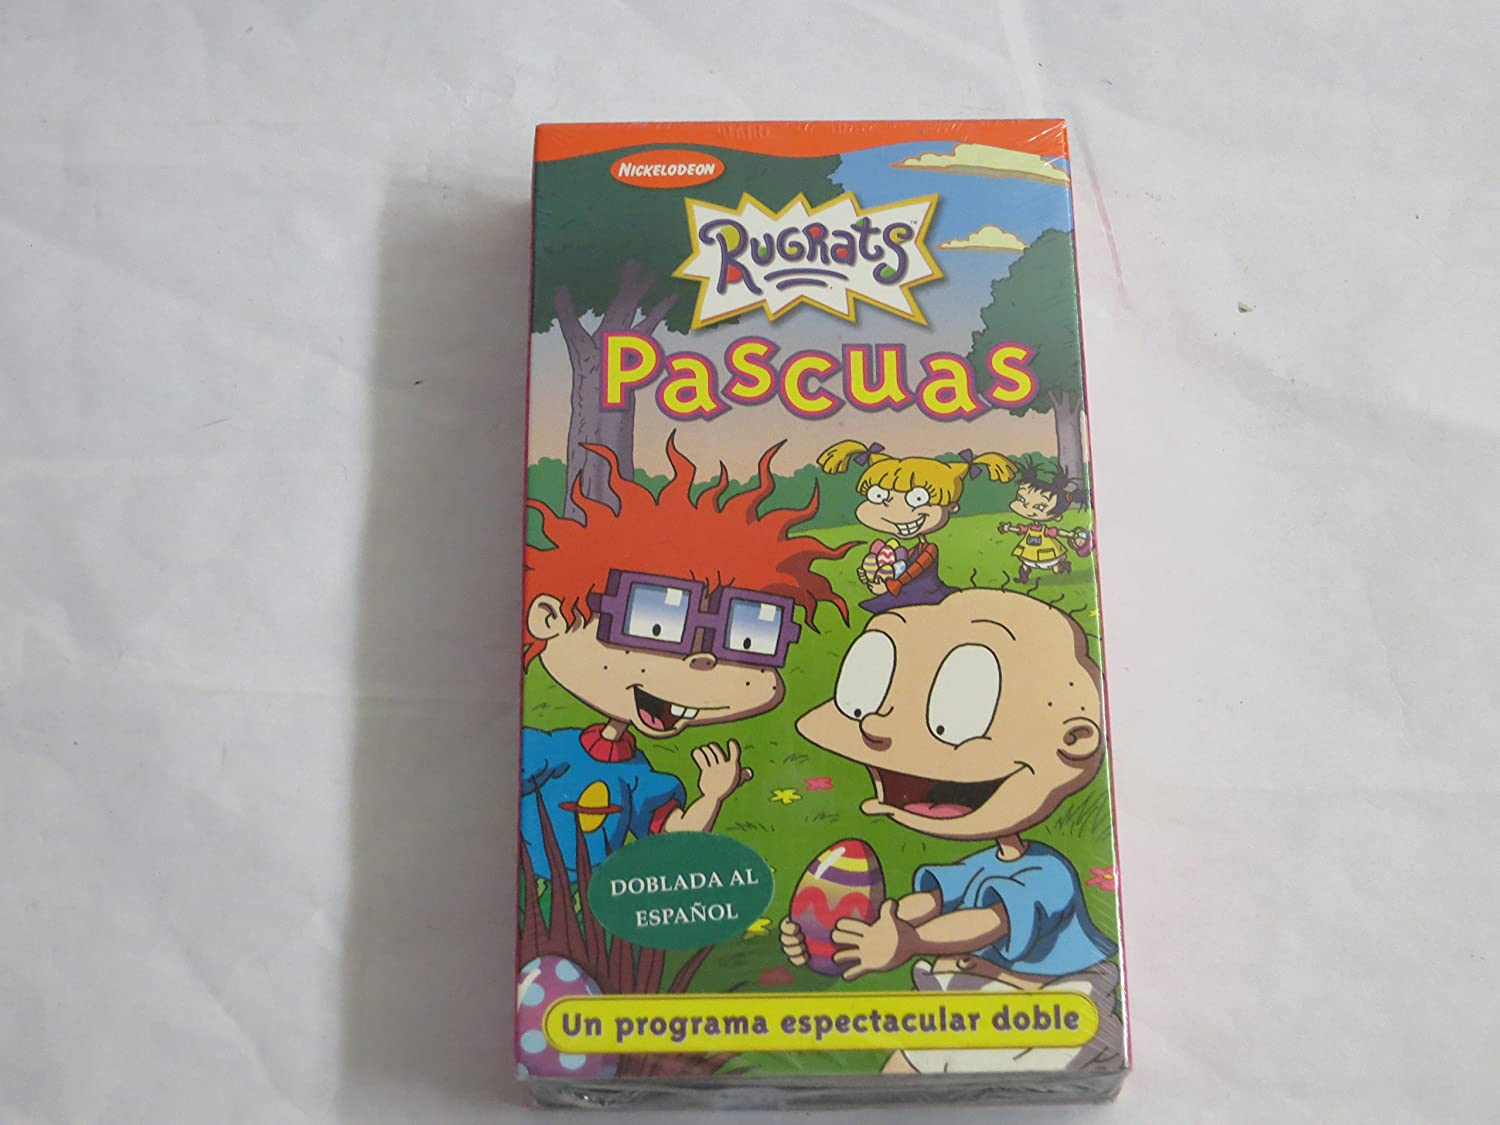 Amazon.com: Rugrats - Easter (Spanish Dubbed Version) [VHS ...